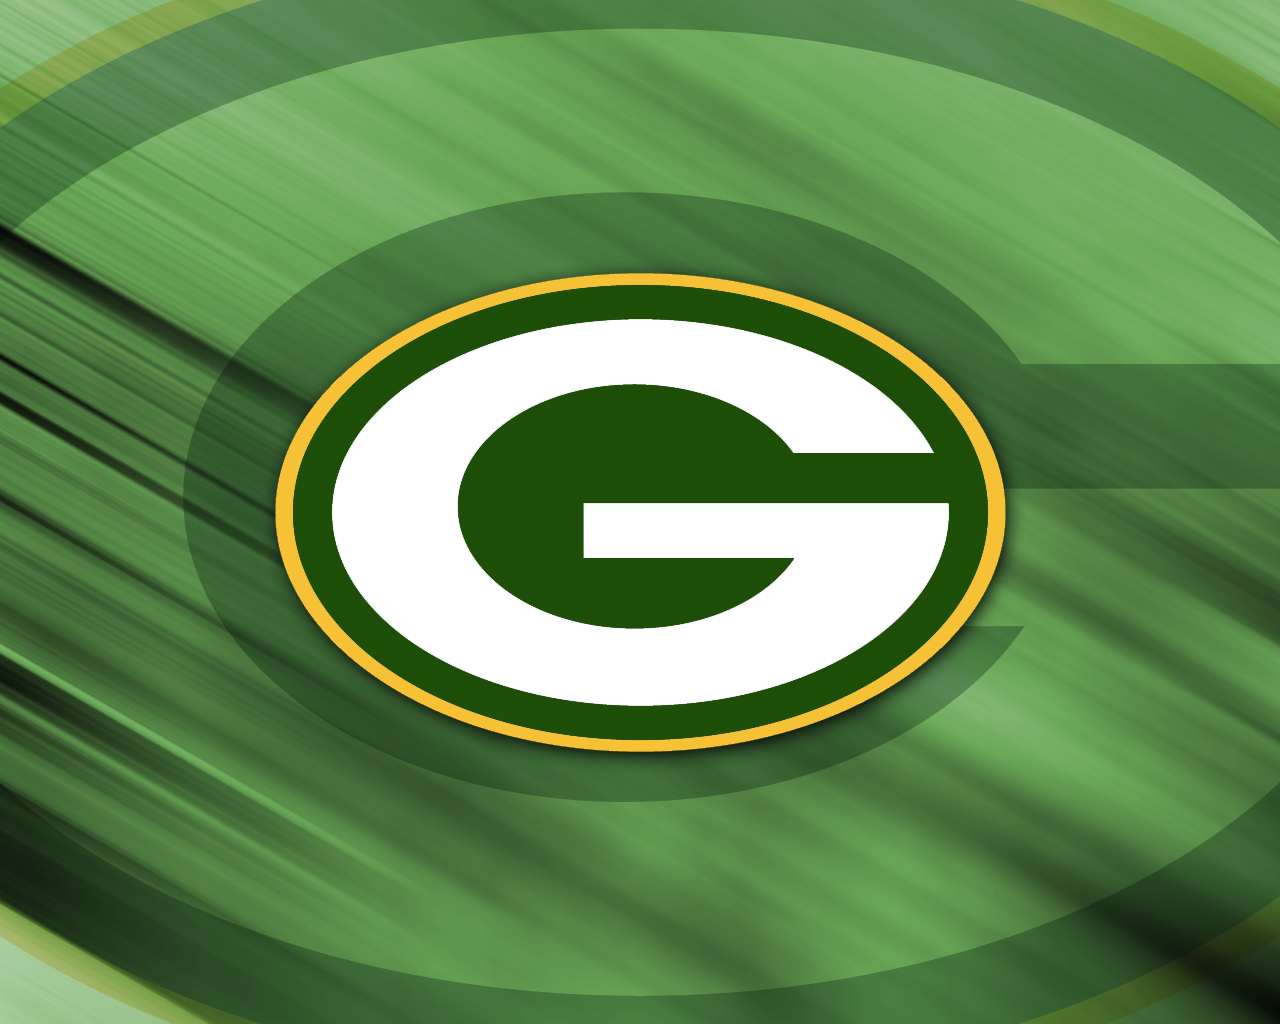 green bay packers - photo #35